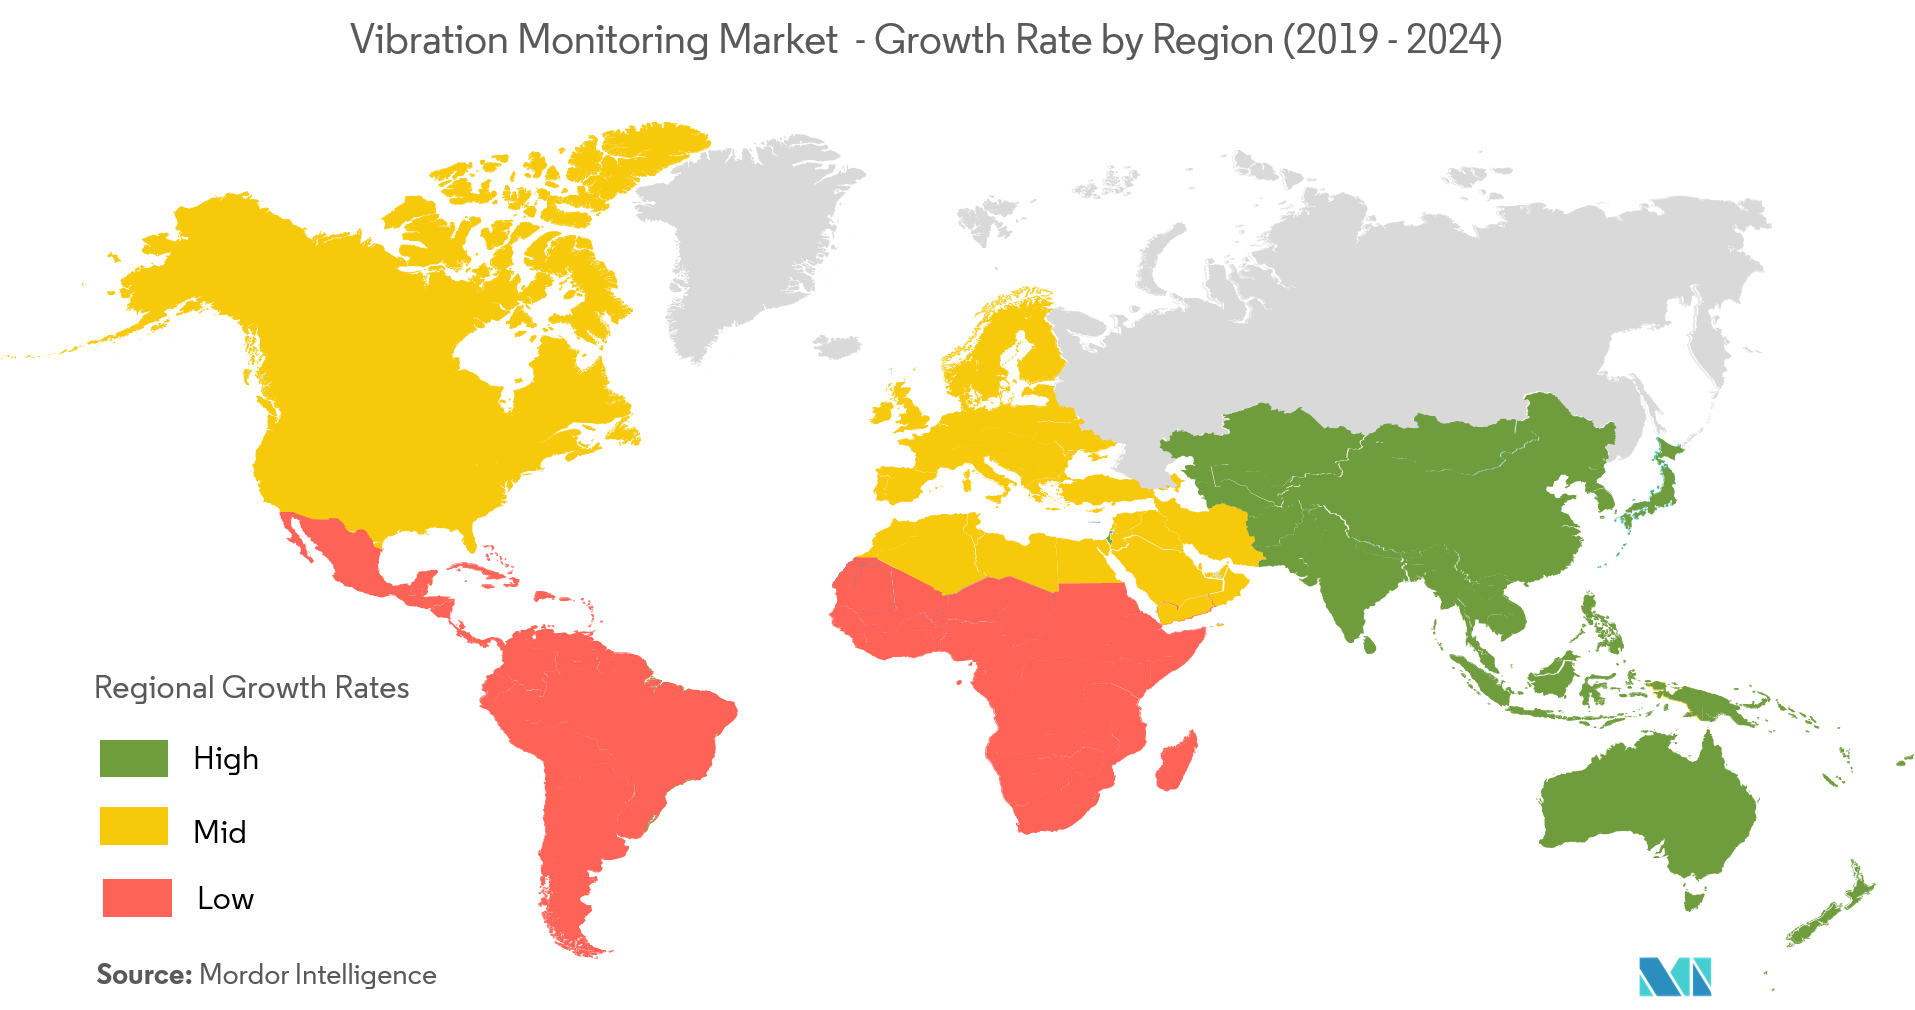 Vibration Monitoring Market Picture 3